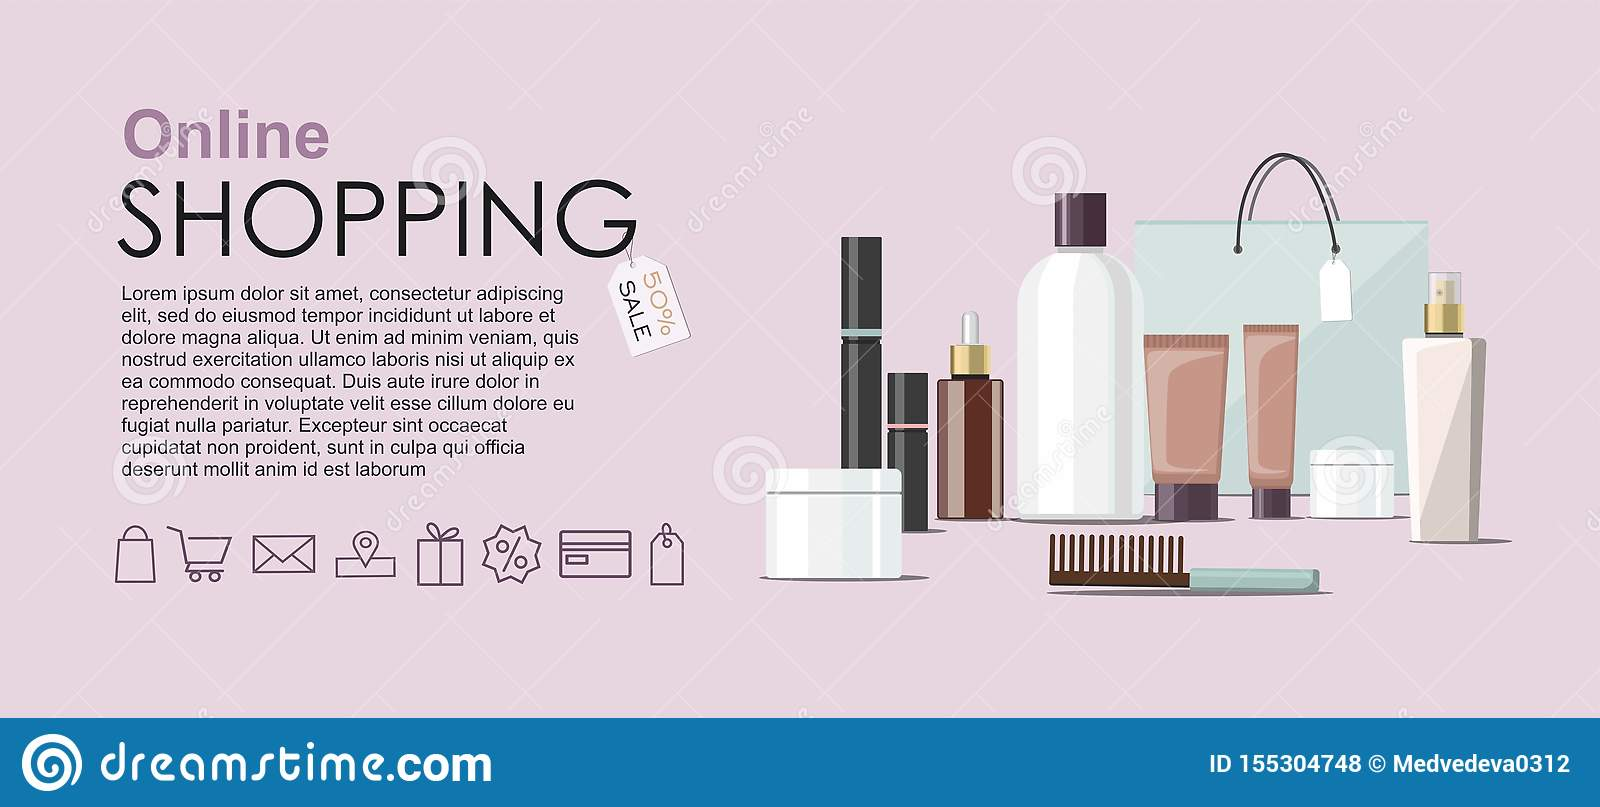 Make Up products and Skincare Packaging with cosmetic bag. Online shopping web banner